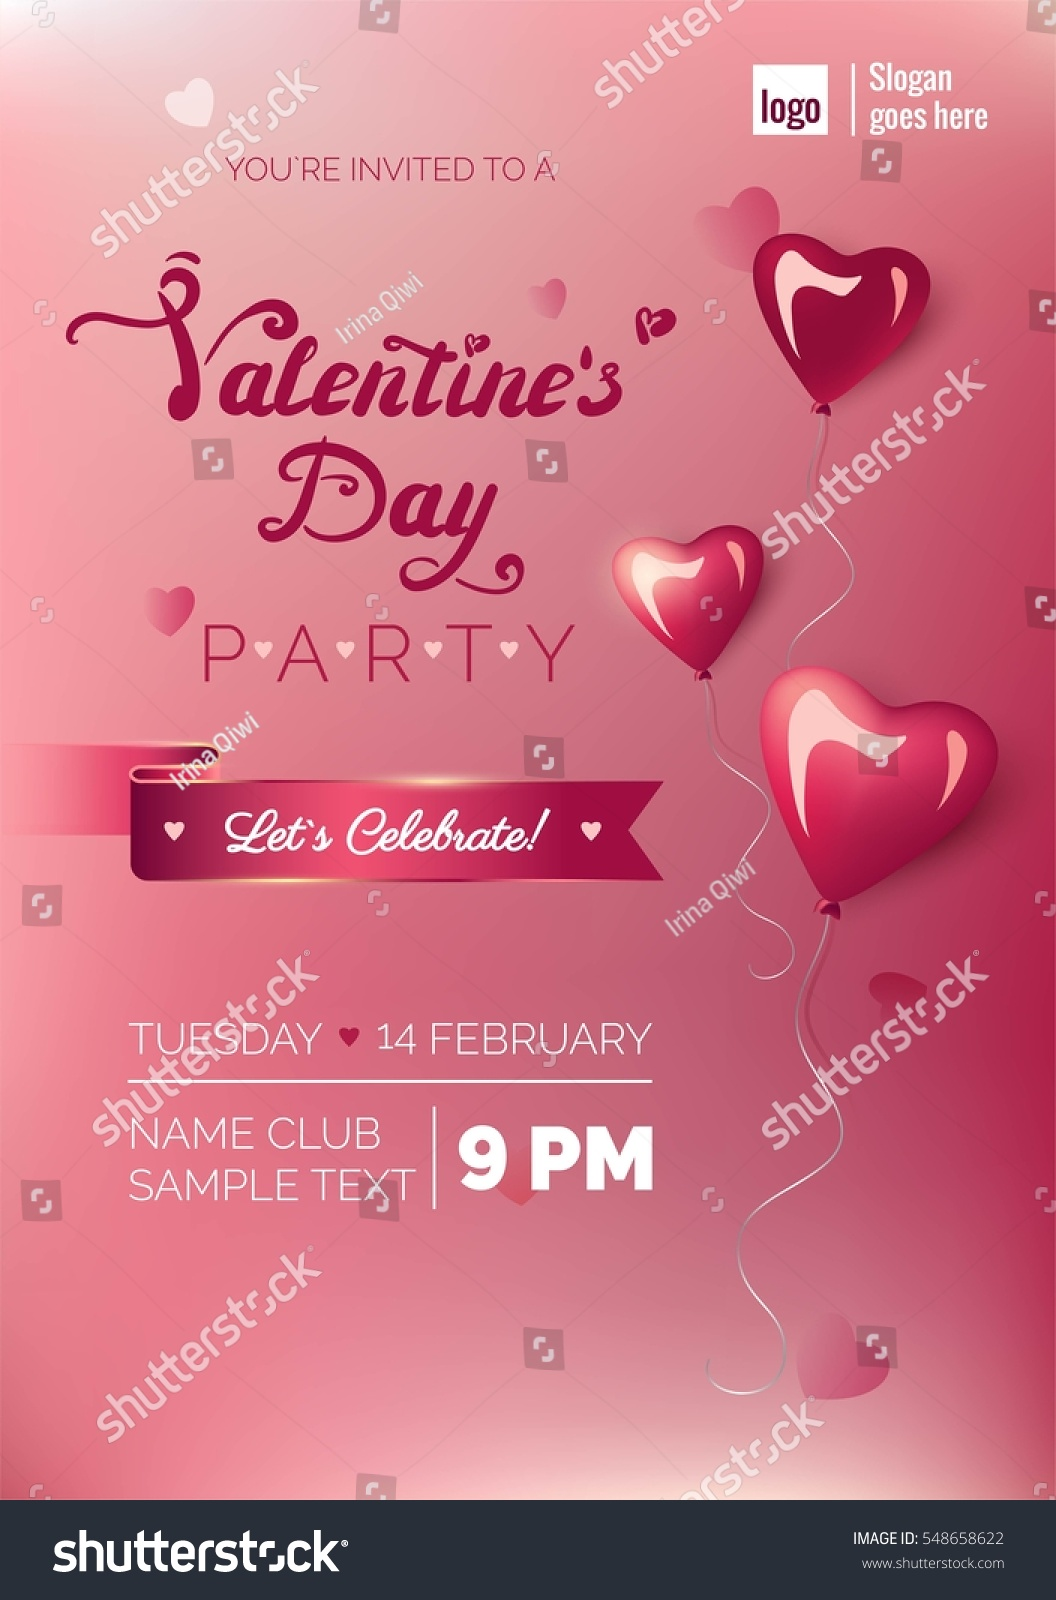 Valentines Day Party Flyer Template Blurred Stock Vector Royalty